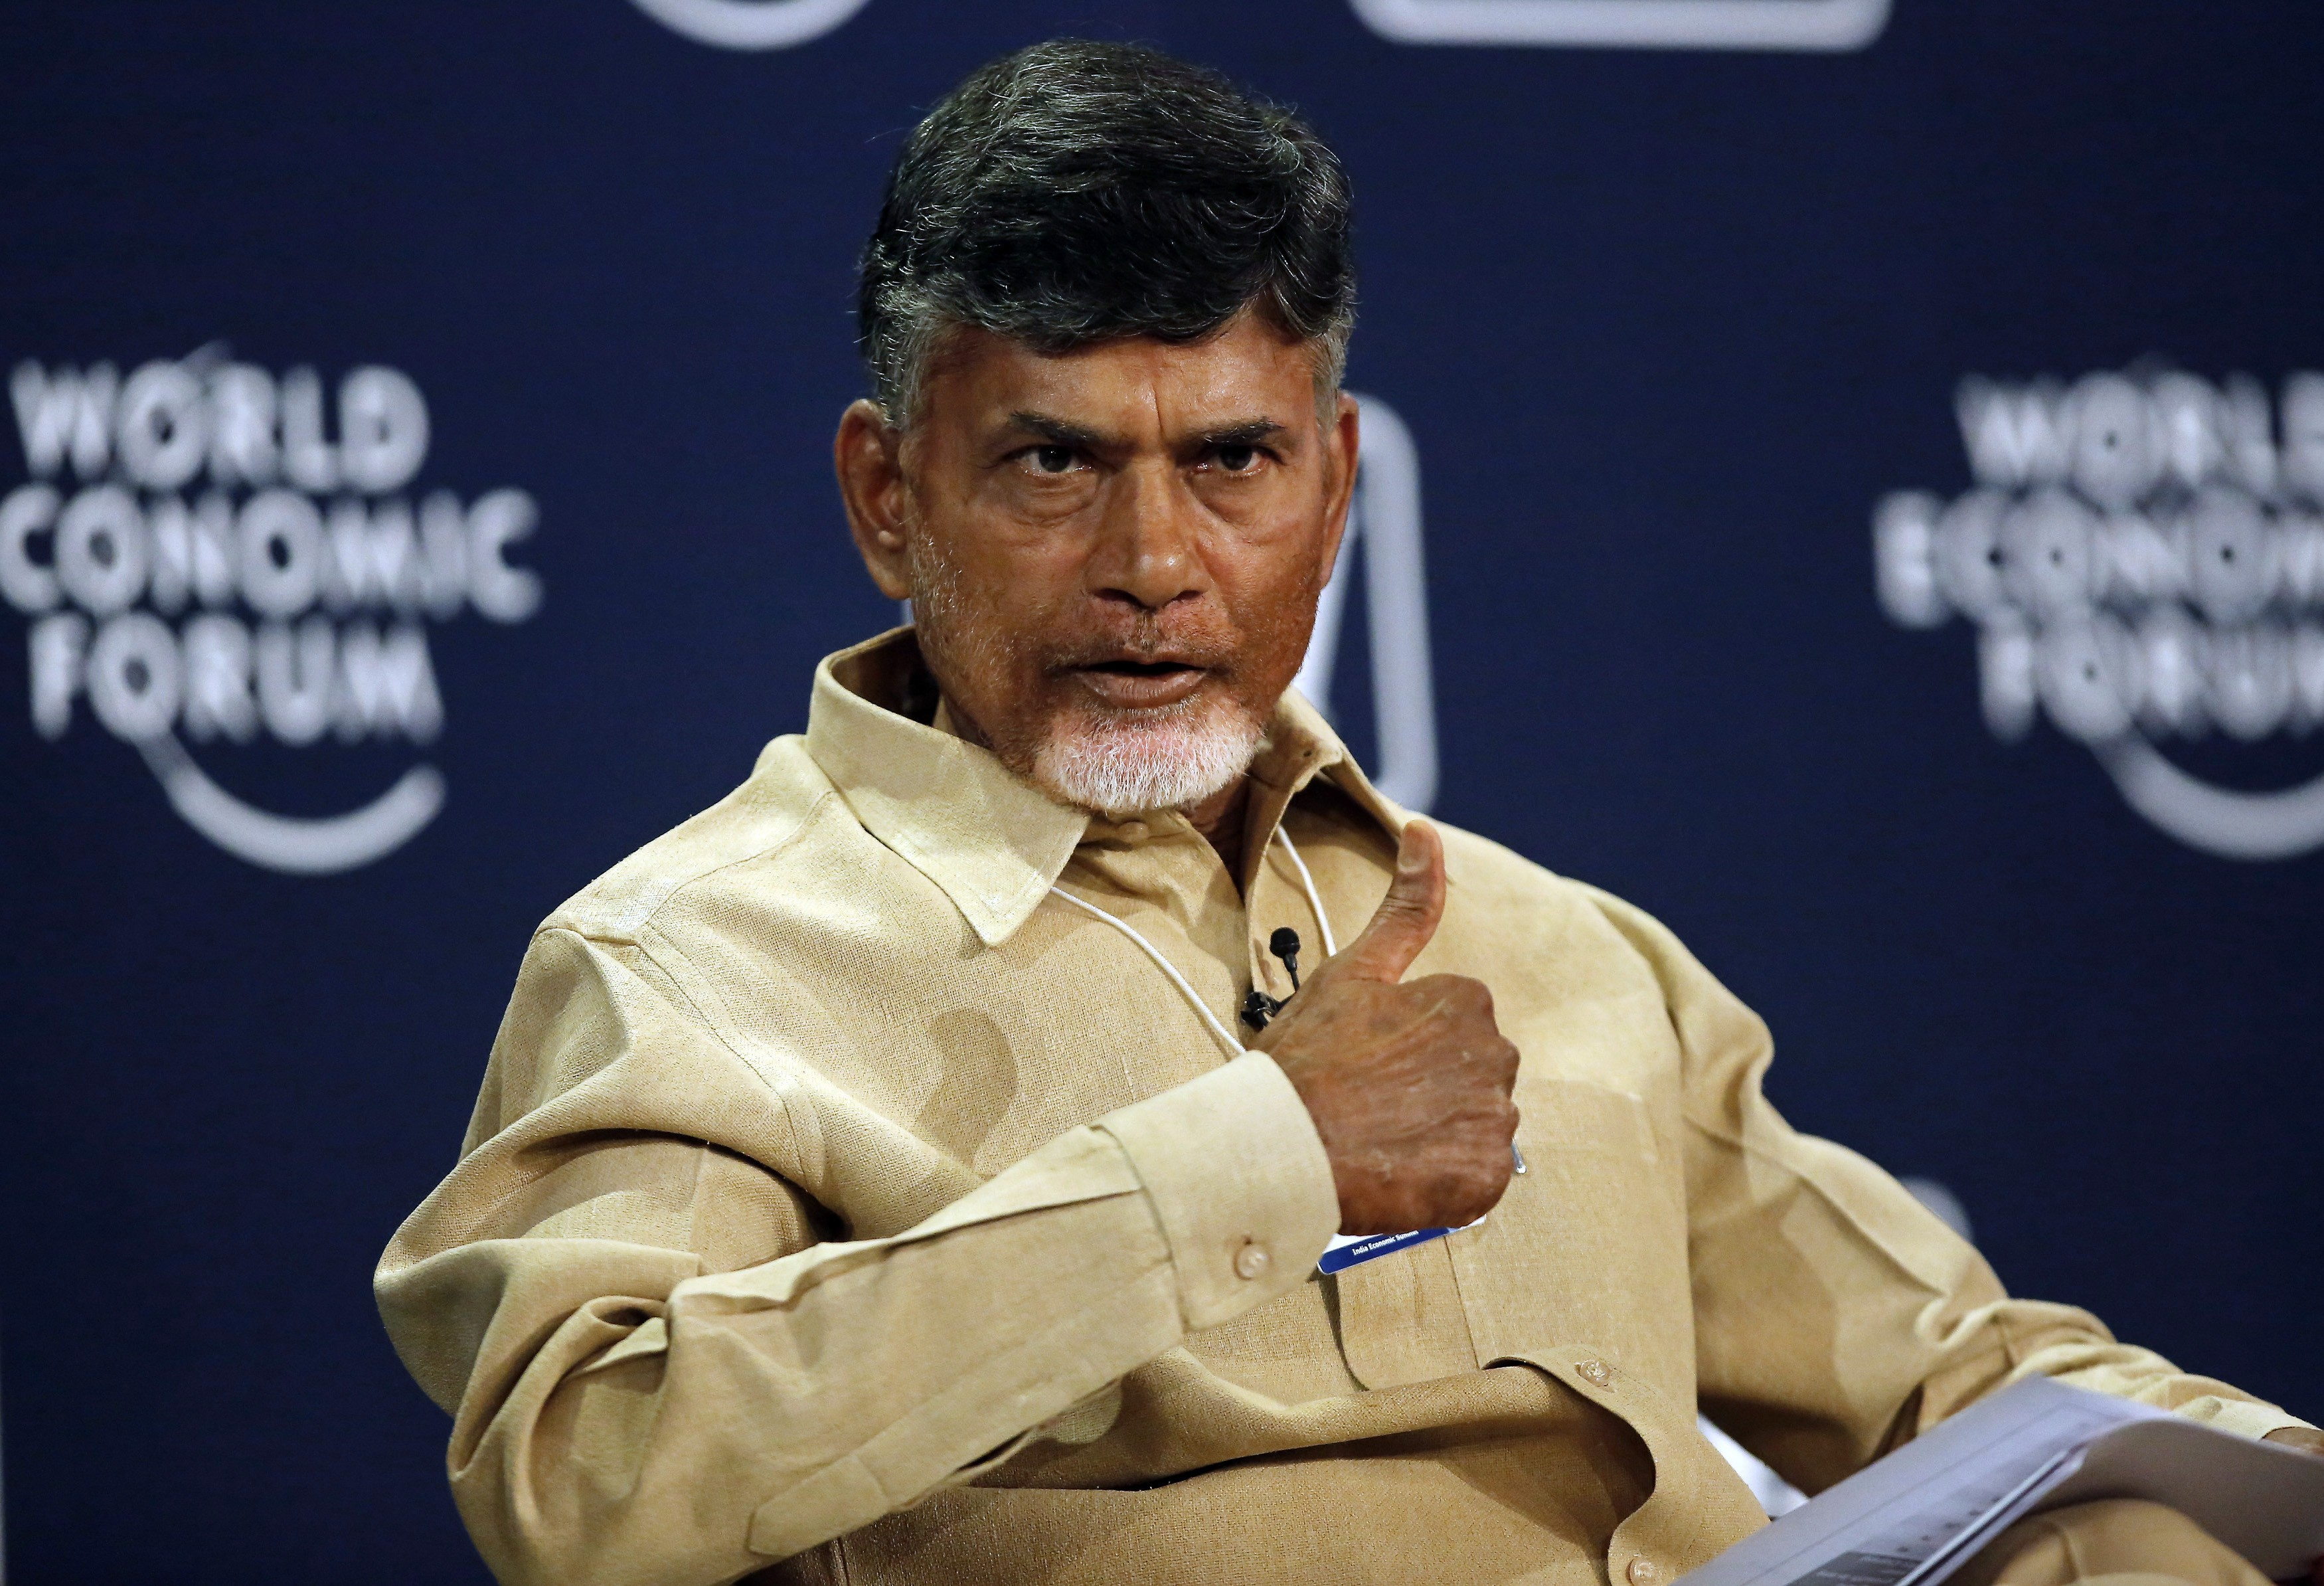 For the government complex in Amaravati that would house the Assembly, High Court and Secretariat, Chandrababu Naidu announced an open competition in which quality rather than budget would be paramount. (Credit: Reuters)